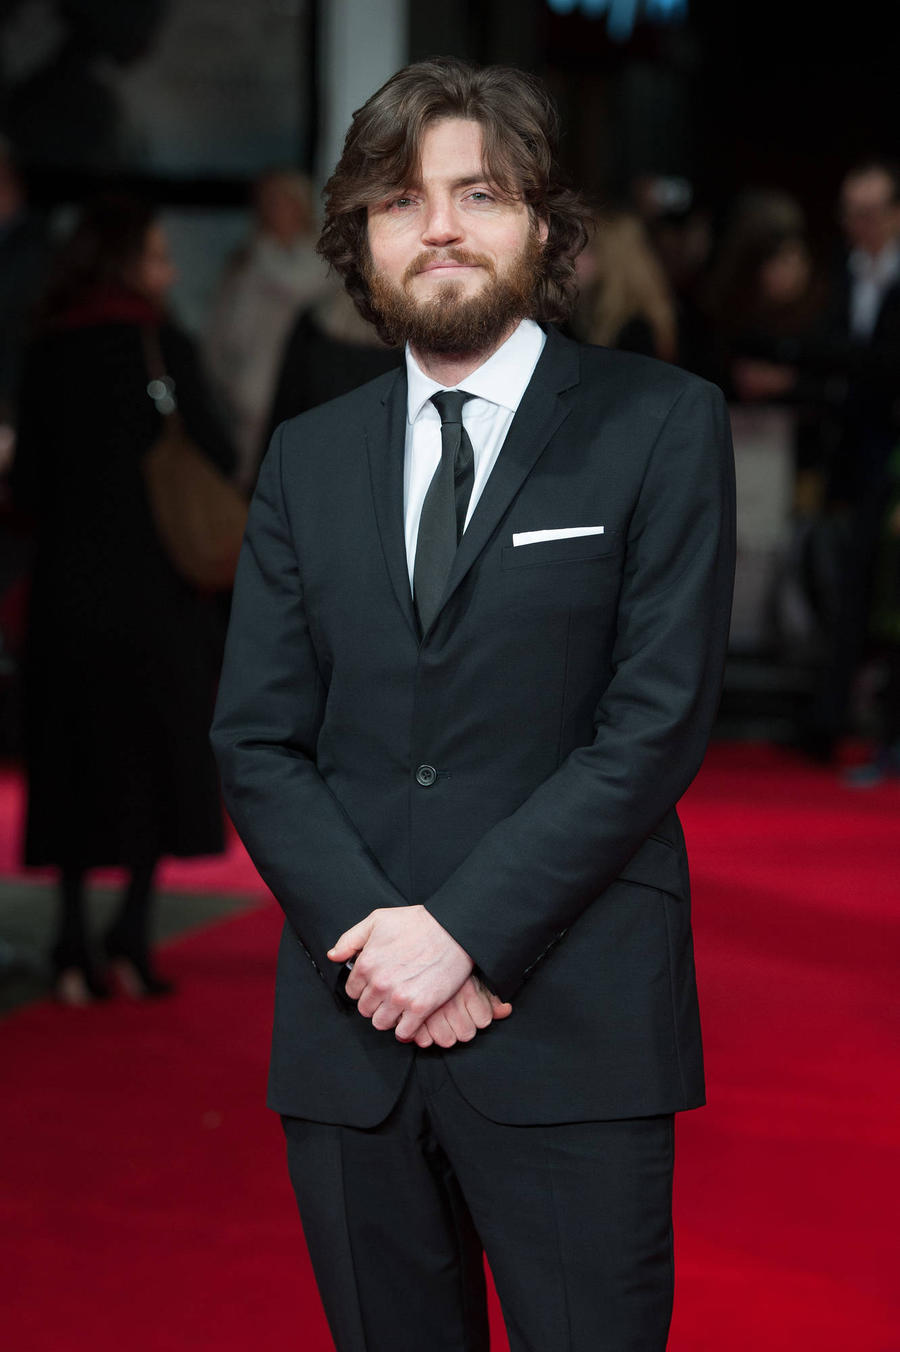 Tom Burke To Star As Cormoran Strike In New J.k. Rowling Series